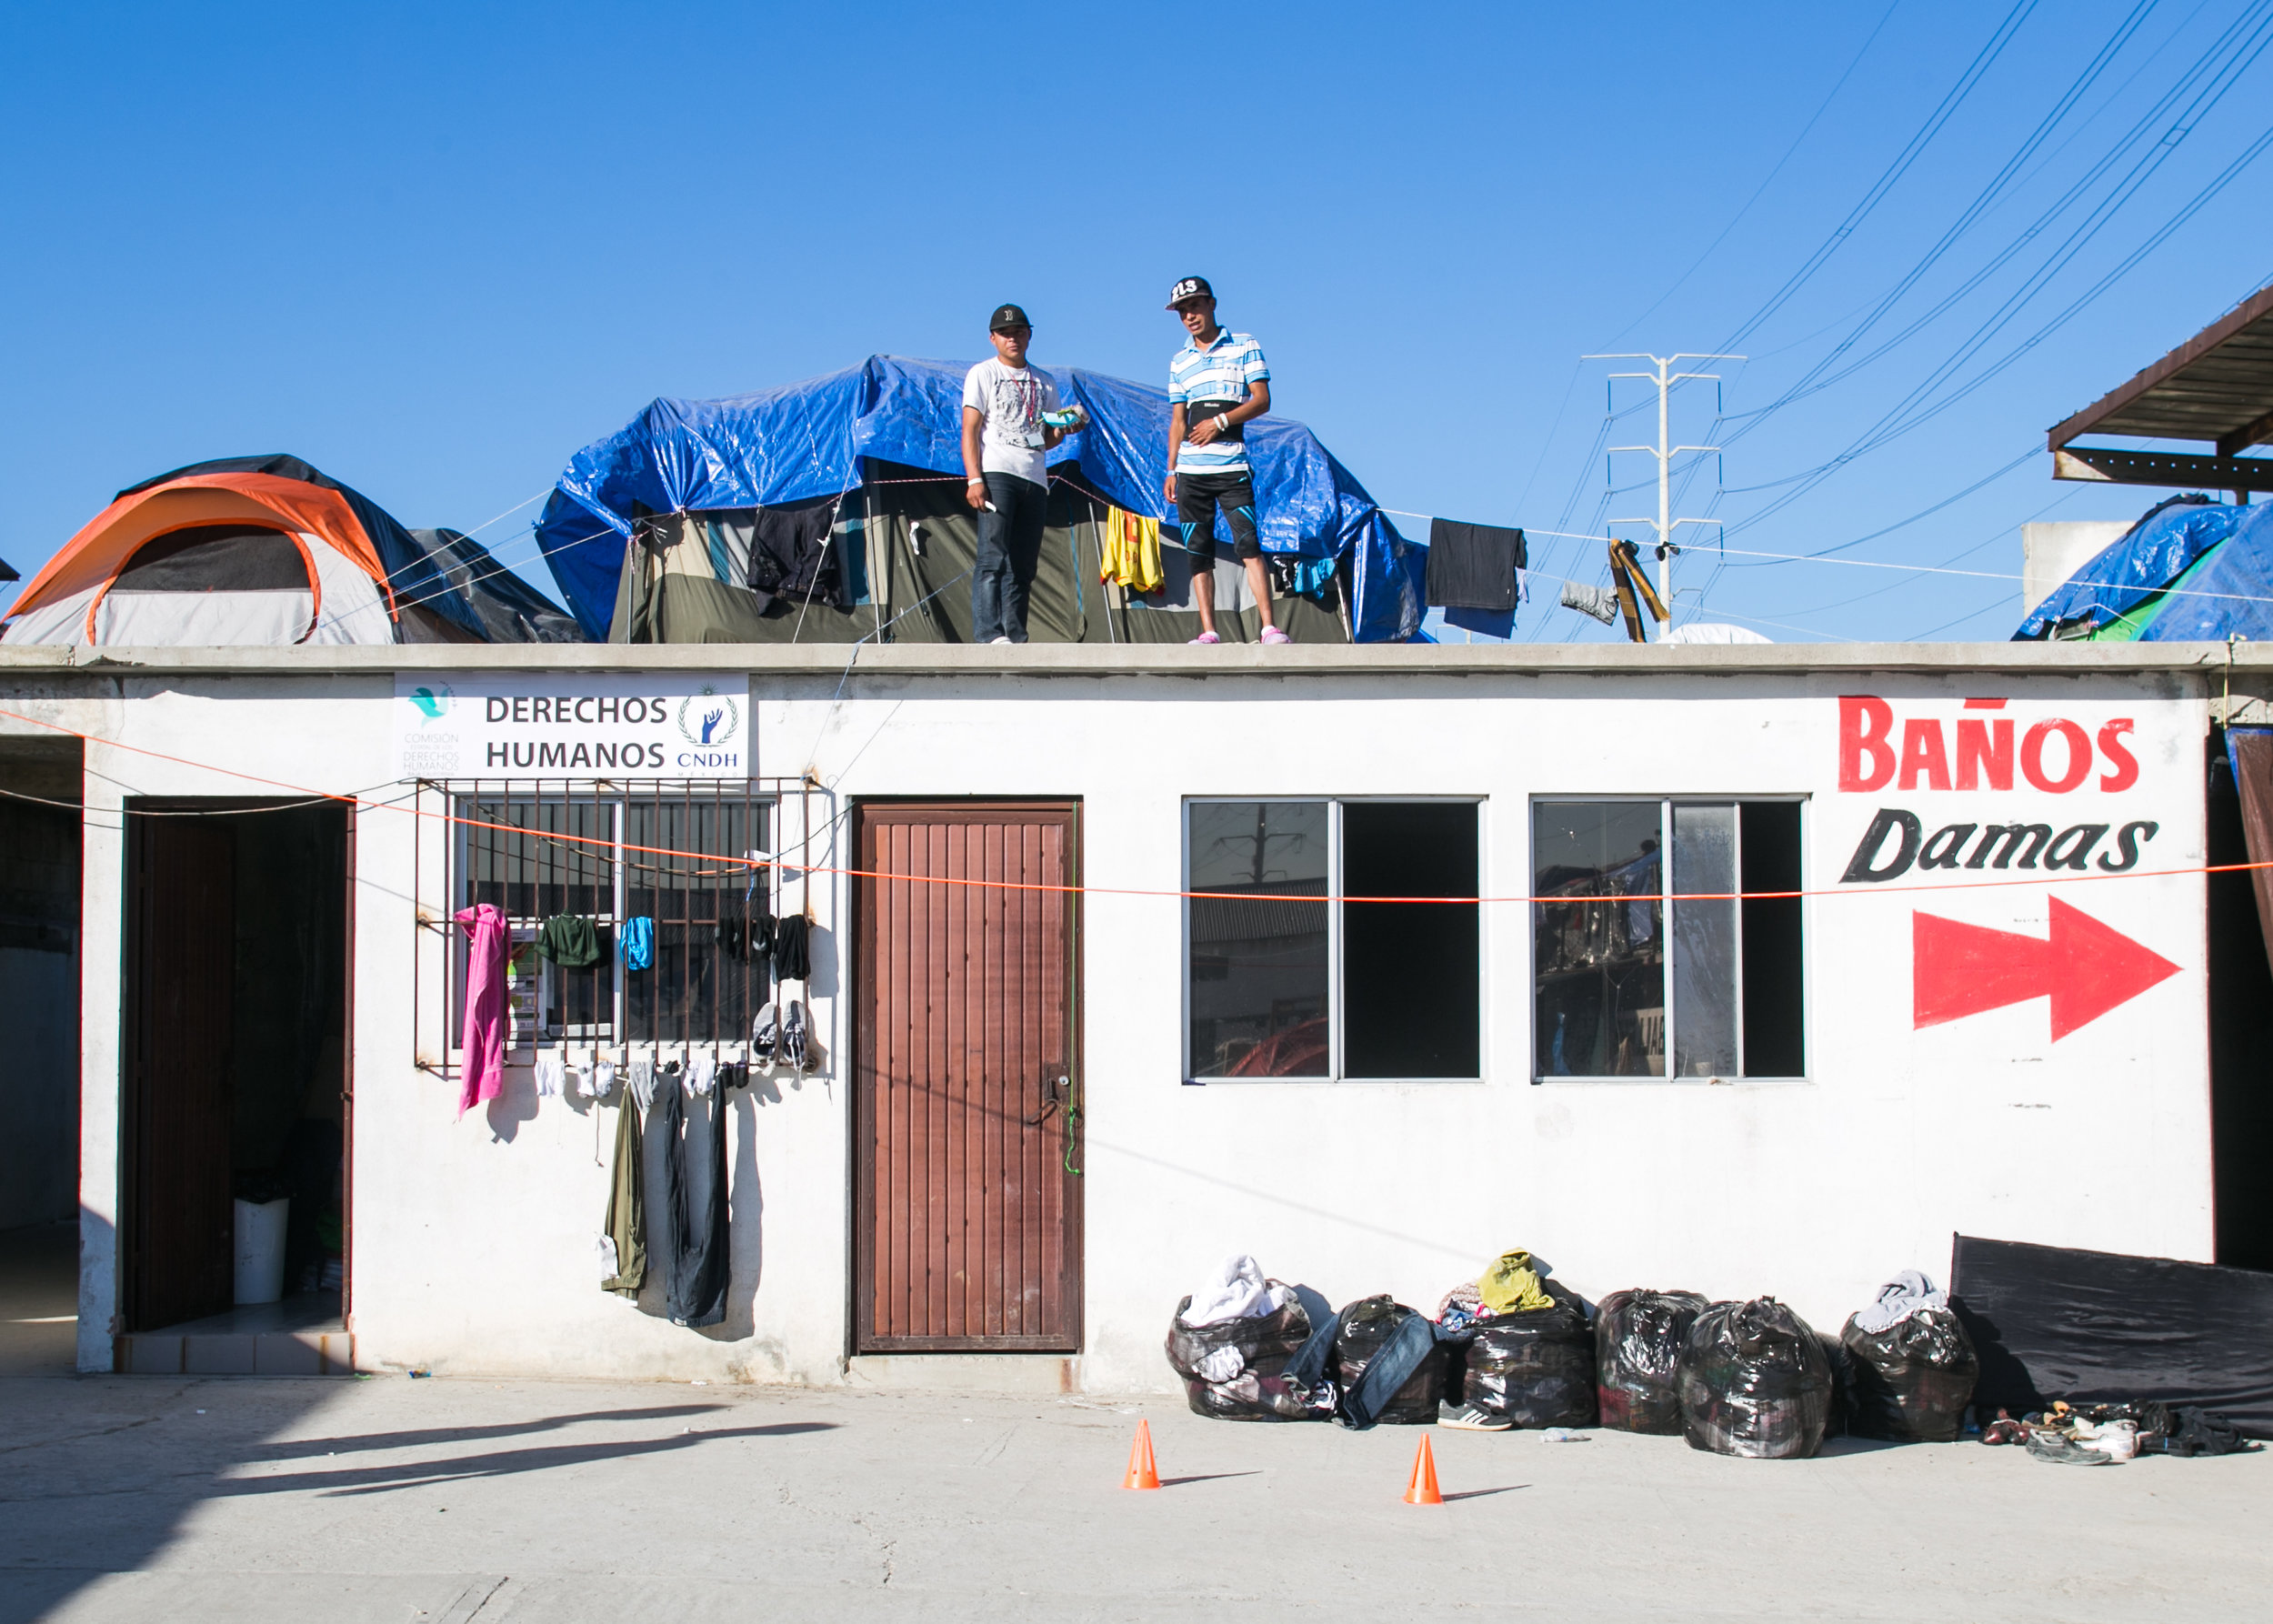 Tents are packed into every section (even on the rooftops) of the overcrowded Barretal refugee camp located outside of Tijuana, Mexico.